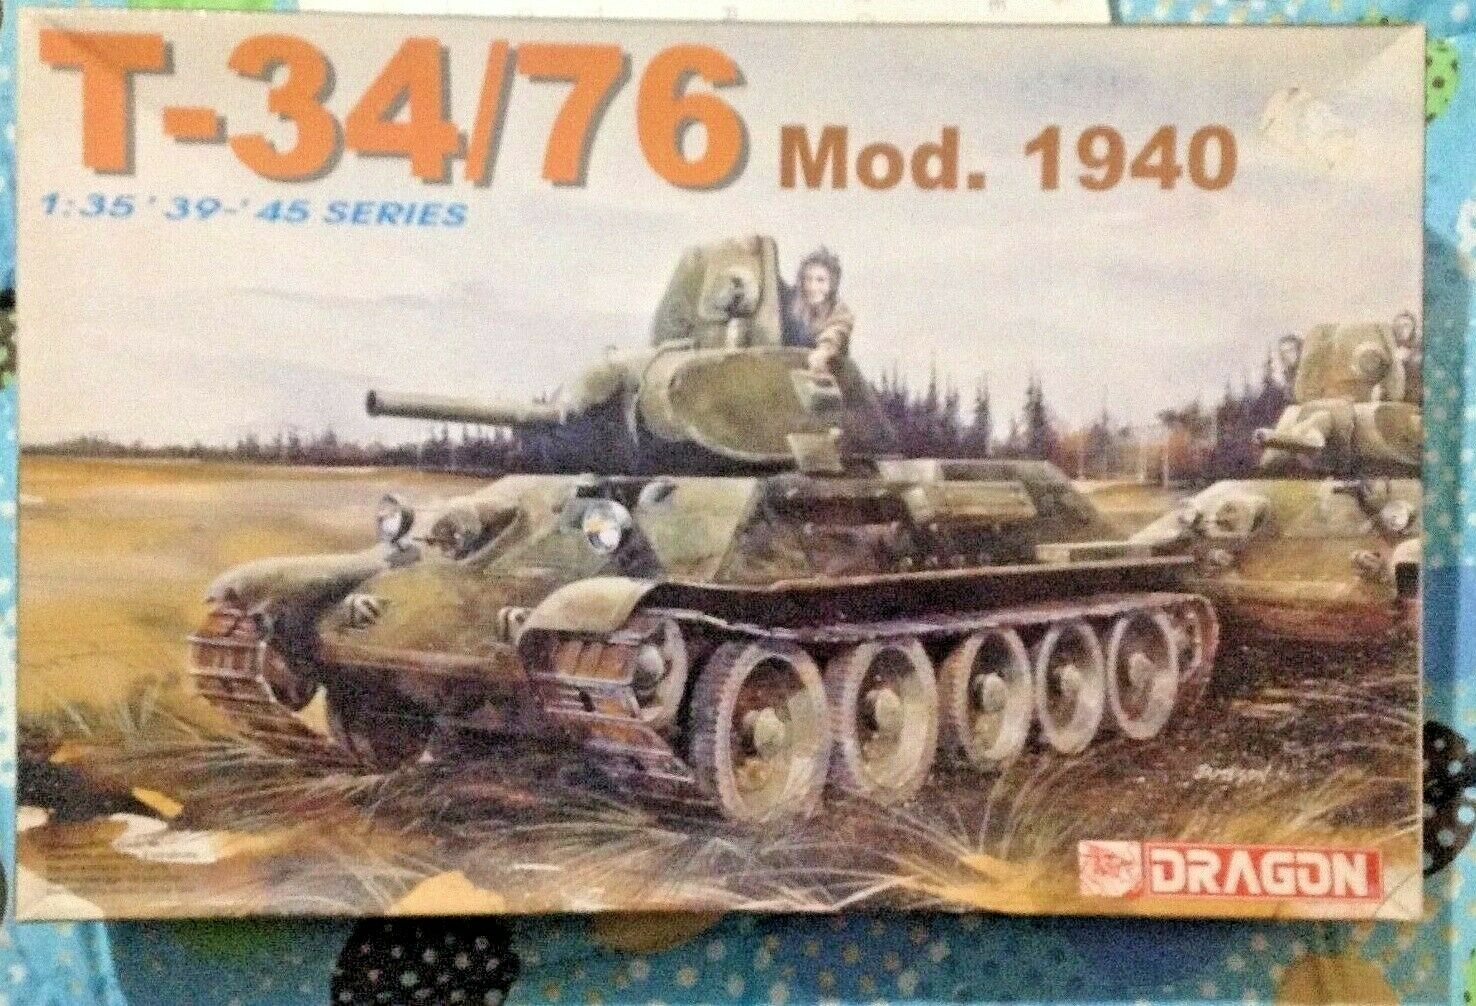 DRAGON 6092  1 35 T-34 76 MOD.1940 VERY RARE-NO TAMIYA TASCA BRONCO RESIN KIT AFV  acheter des rabais